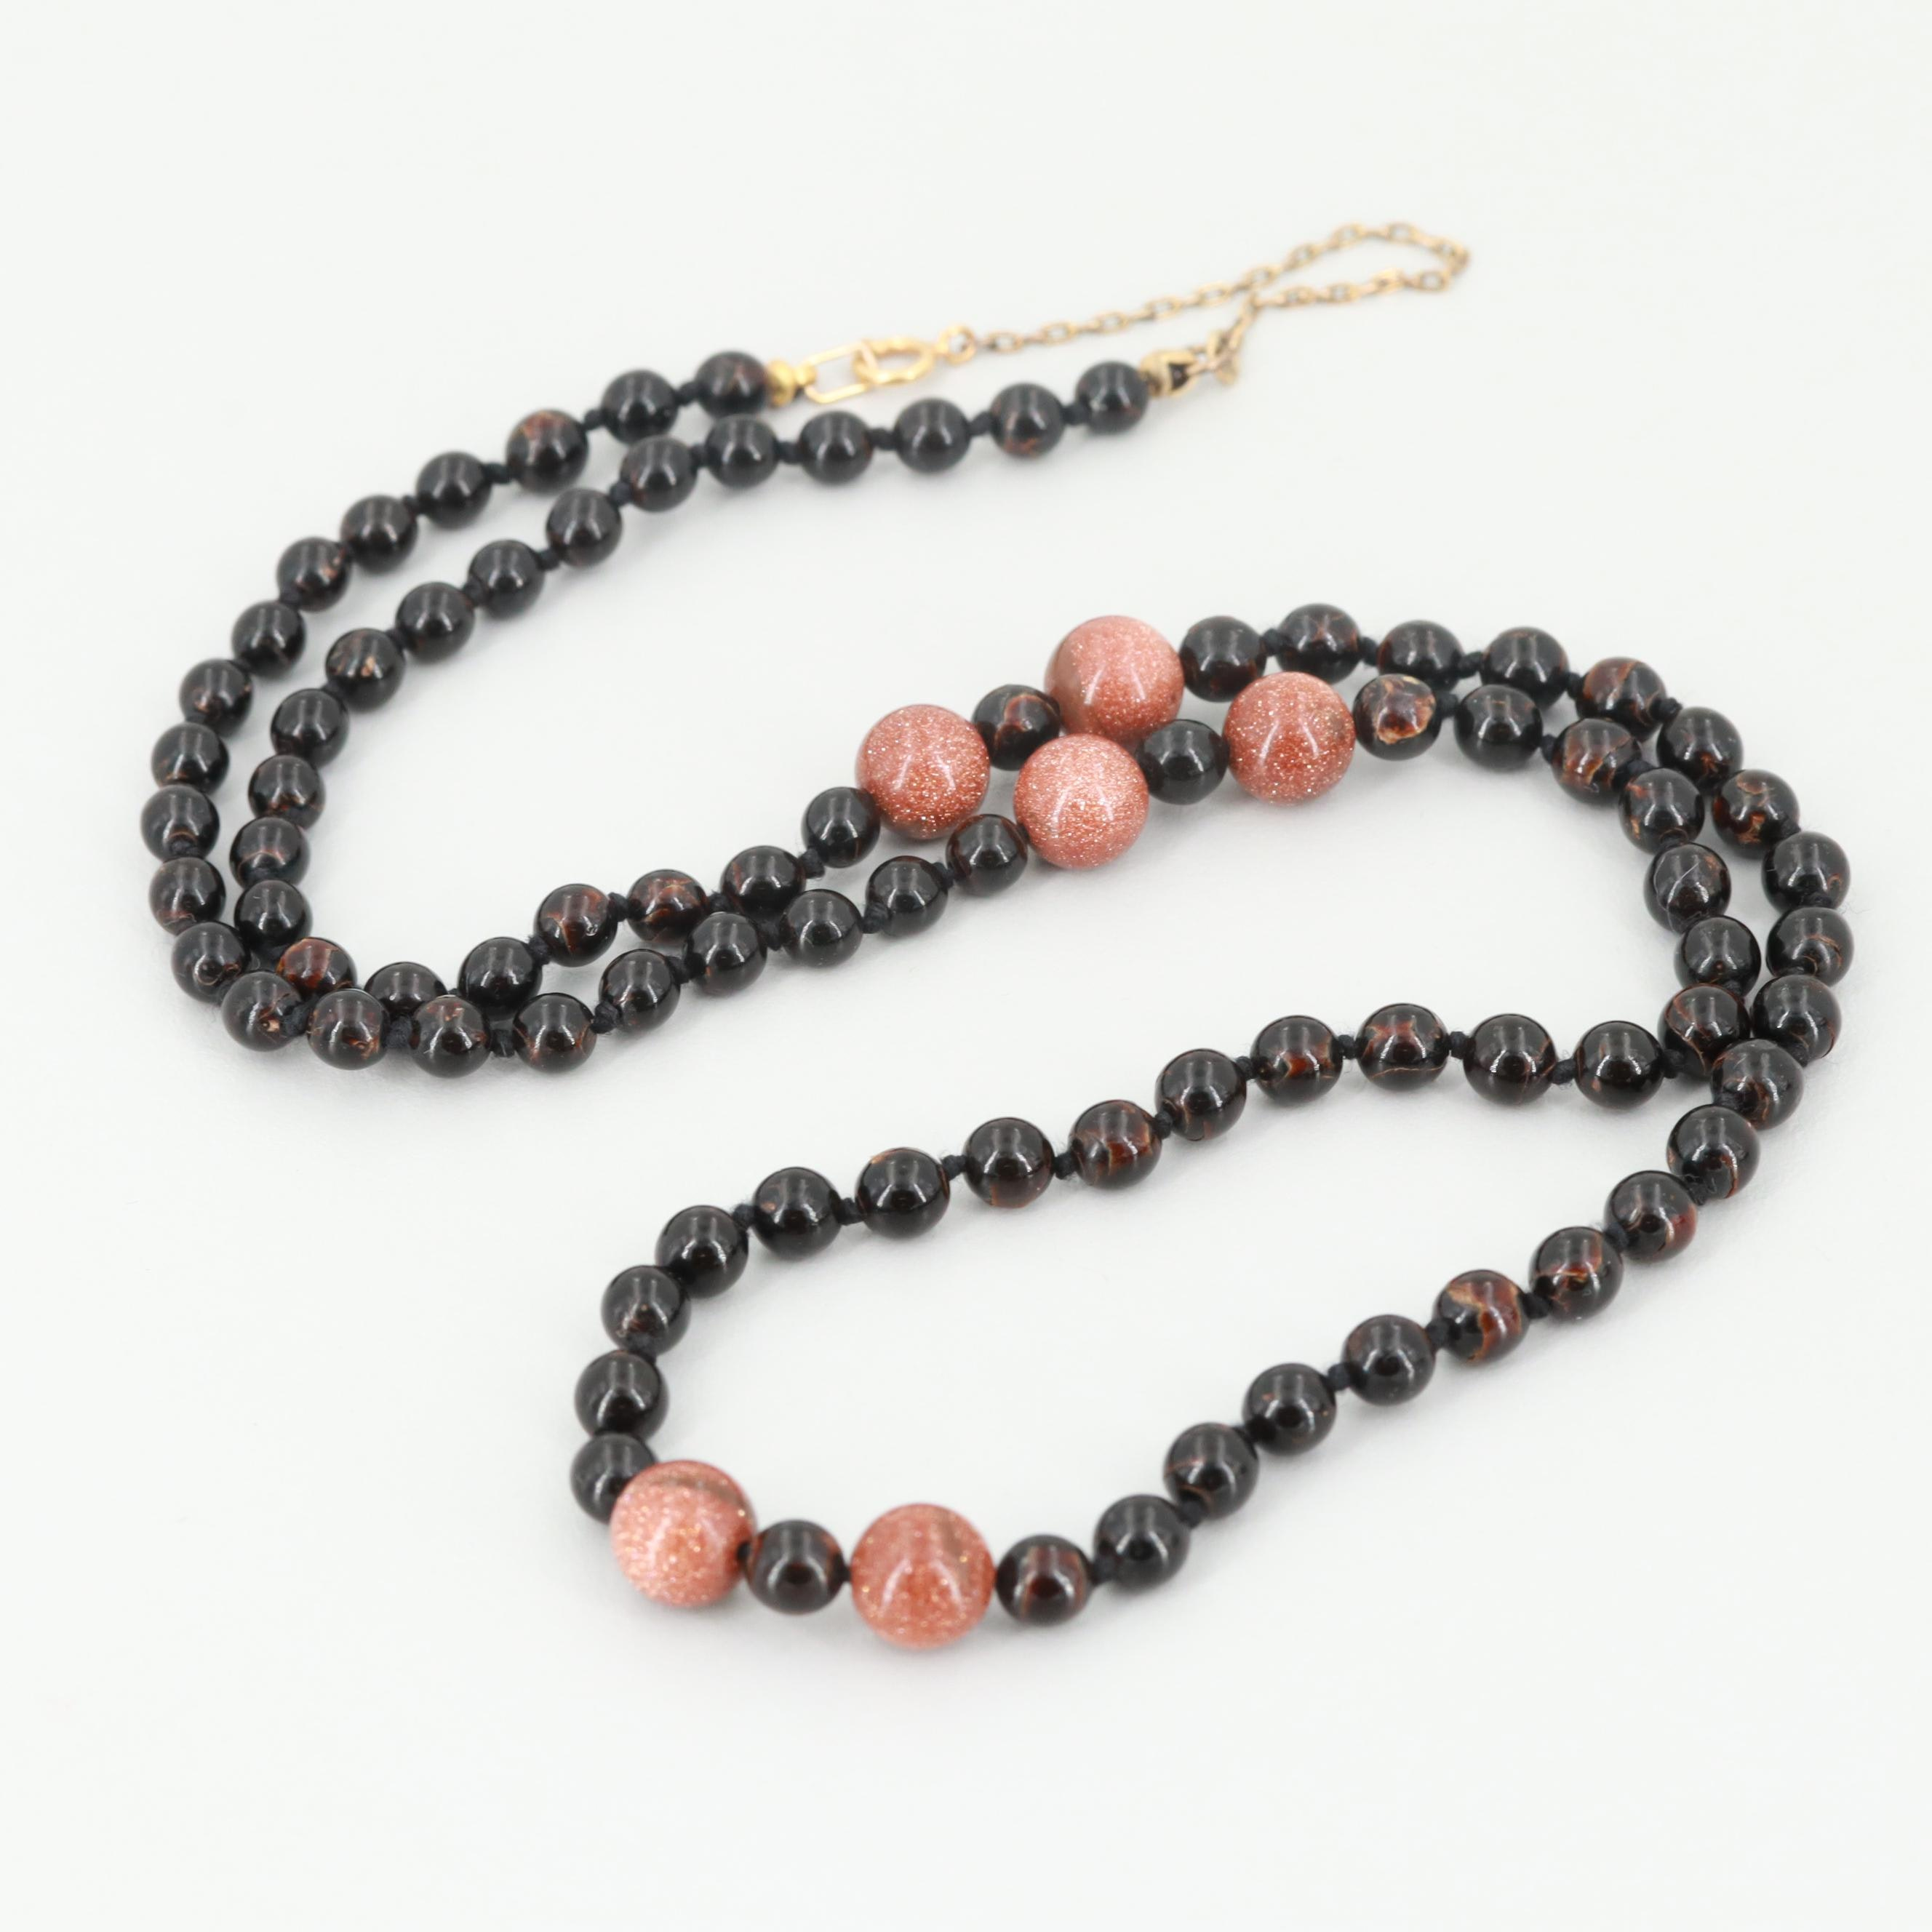 14K Yellow Gold Sunstone Glass and Black Coral Beaded Necklace